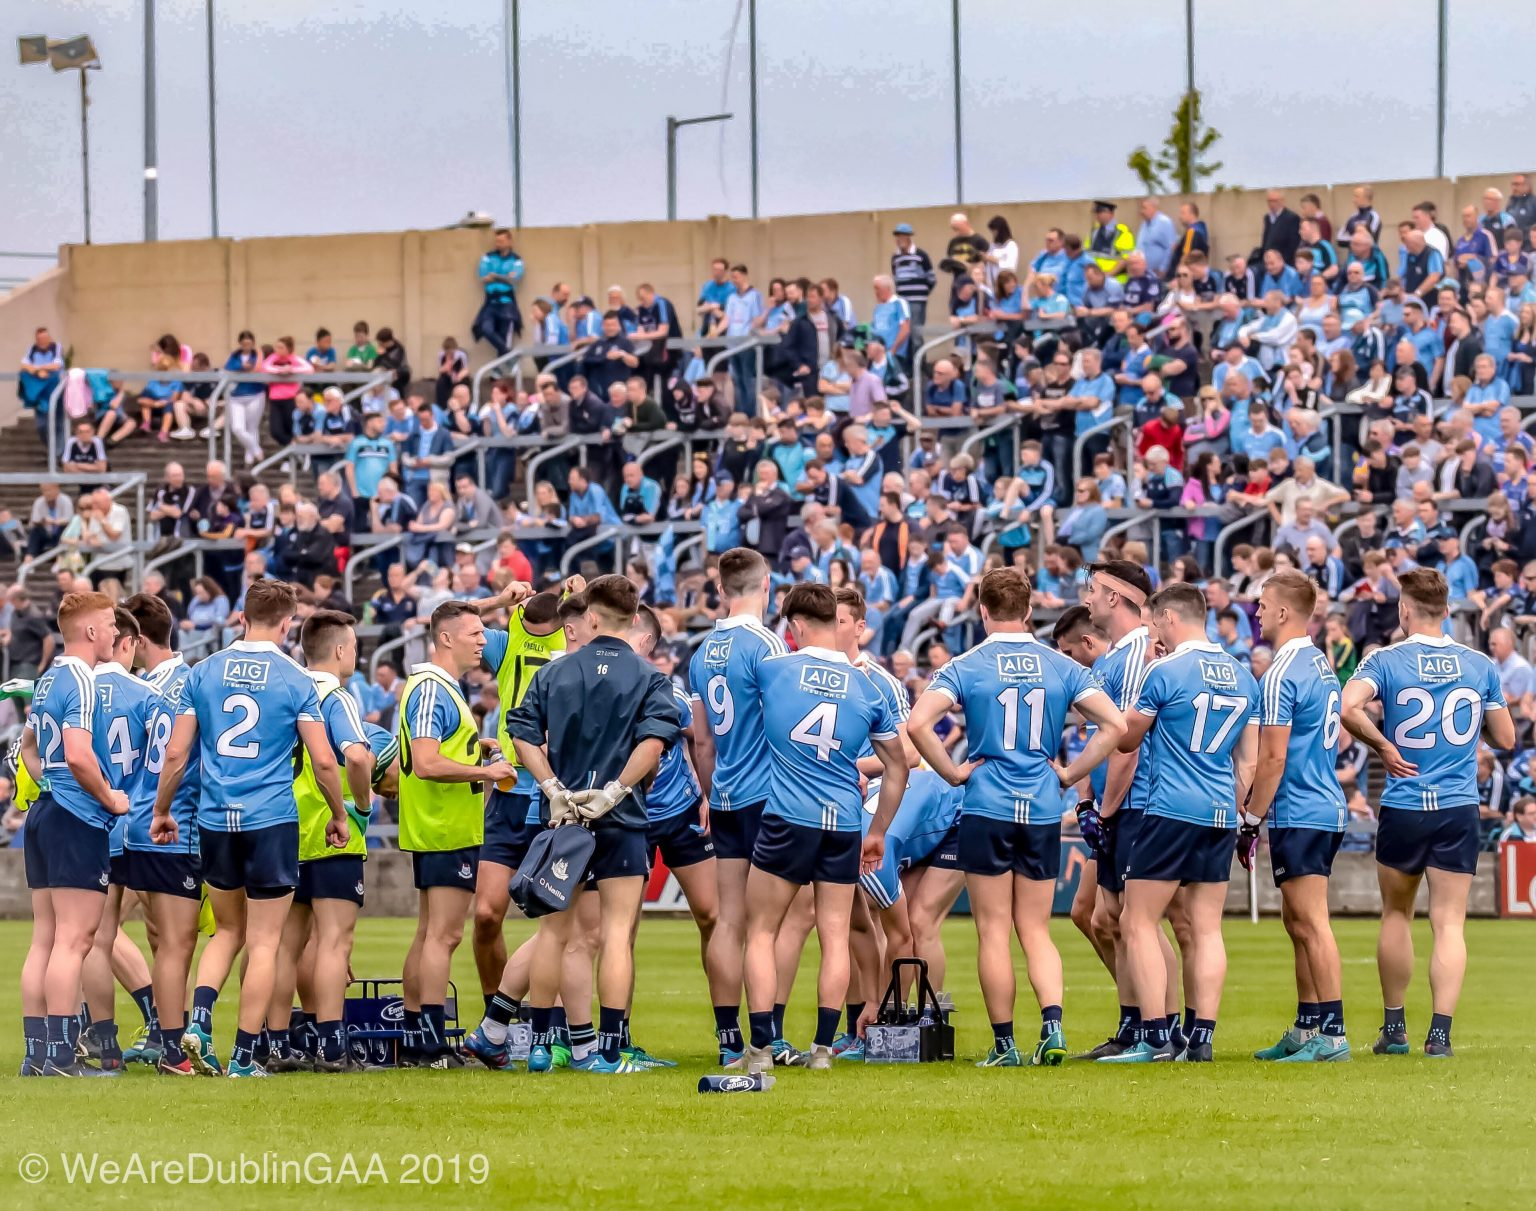 Dublin Men's Football team gather in a huddle on the pitch before a game